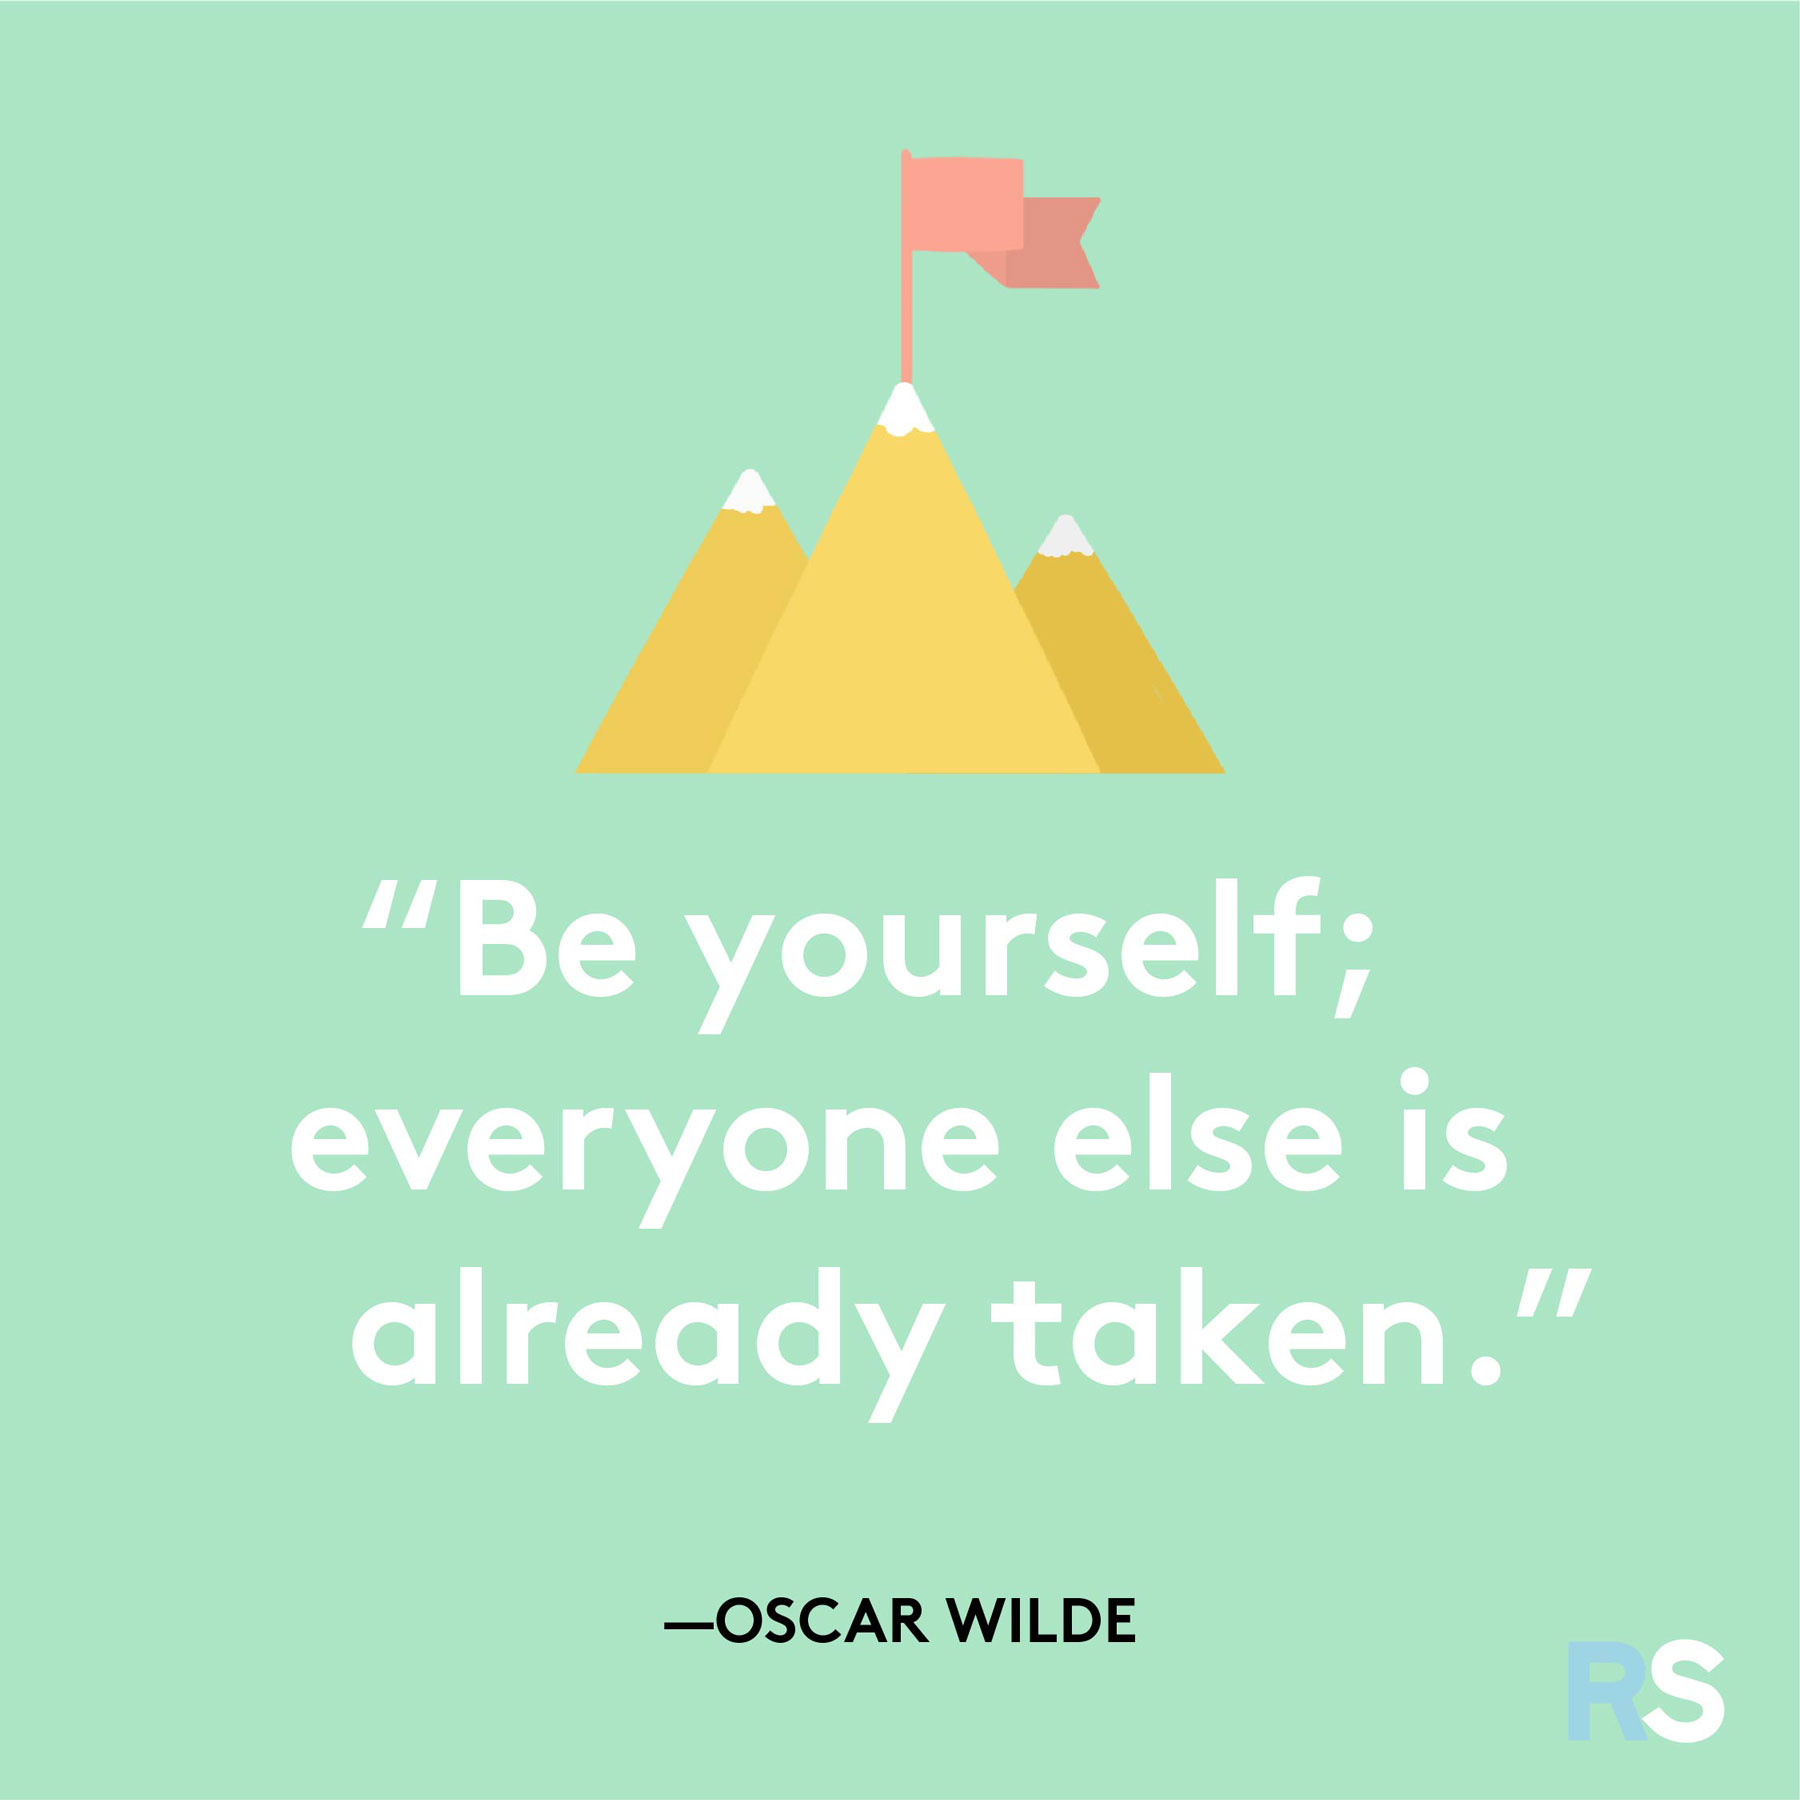 Positive motivating quotes, captions, messages – Oscar Wilde quote